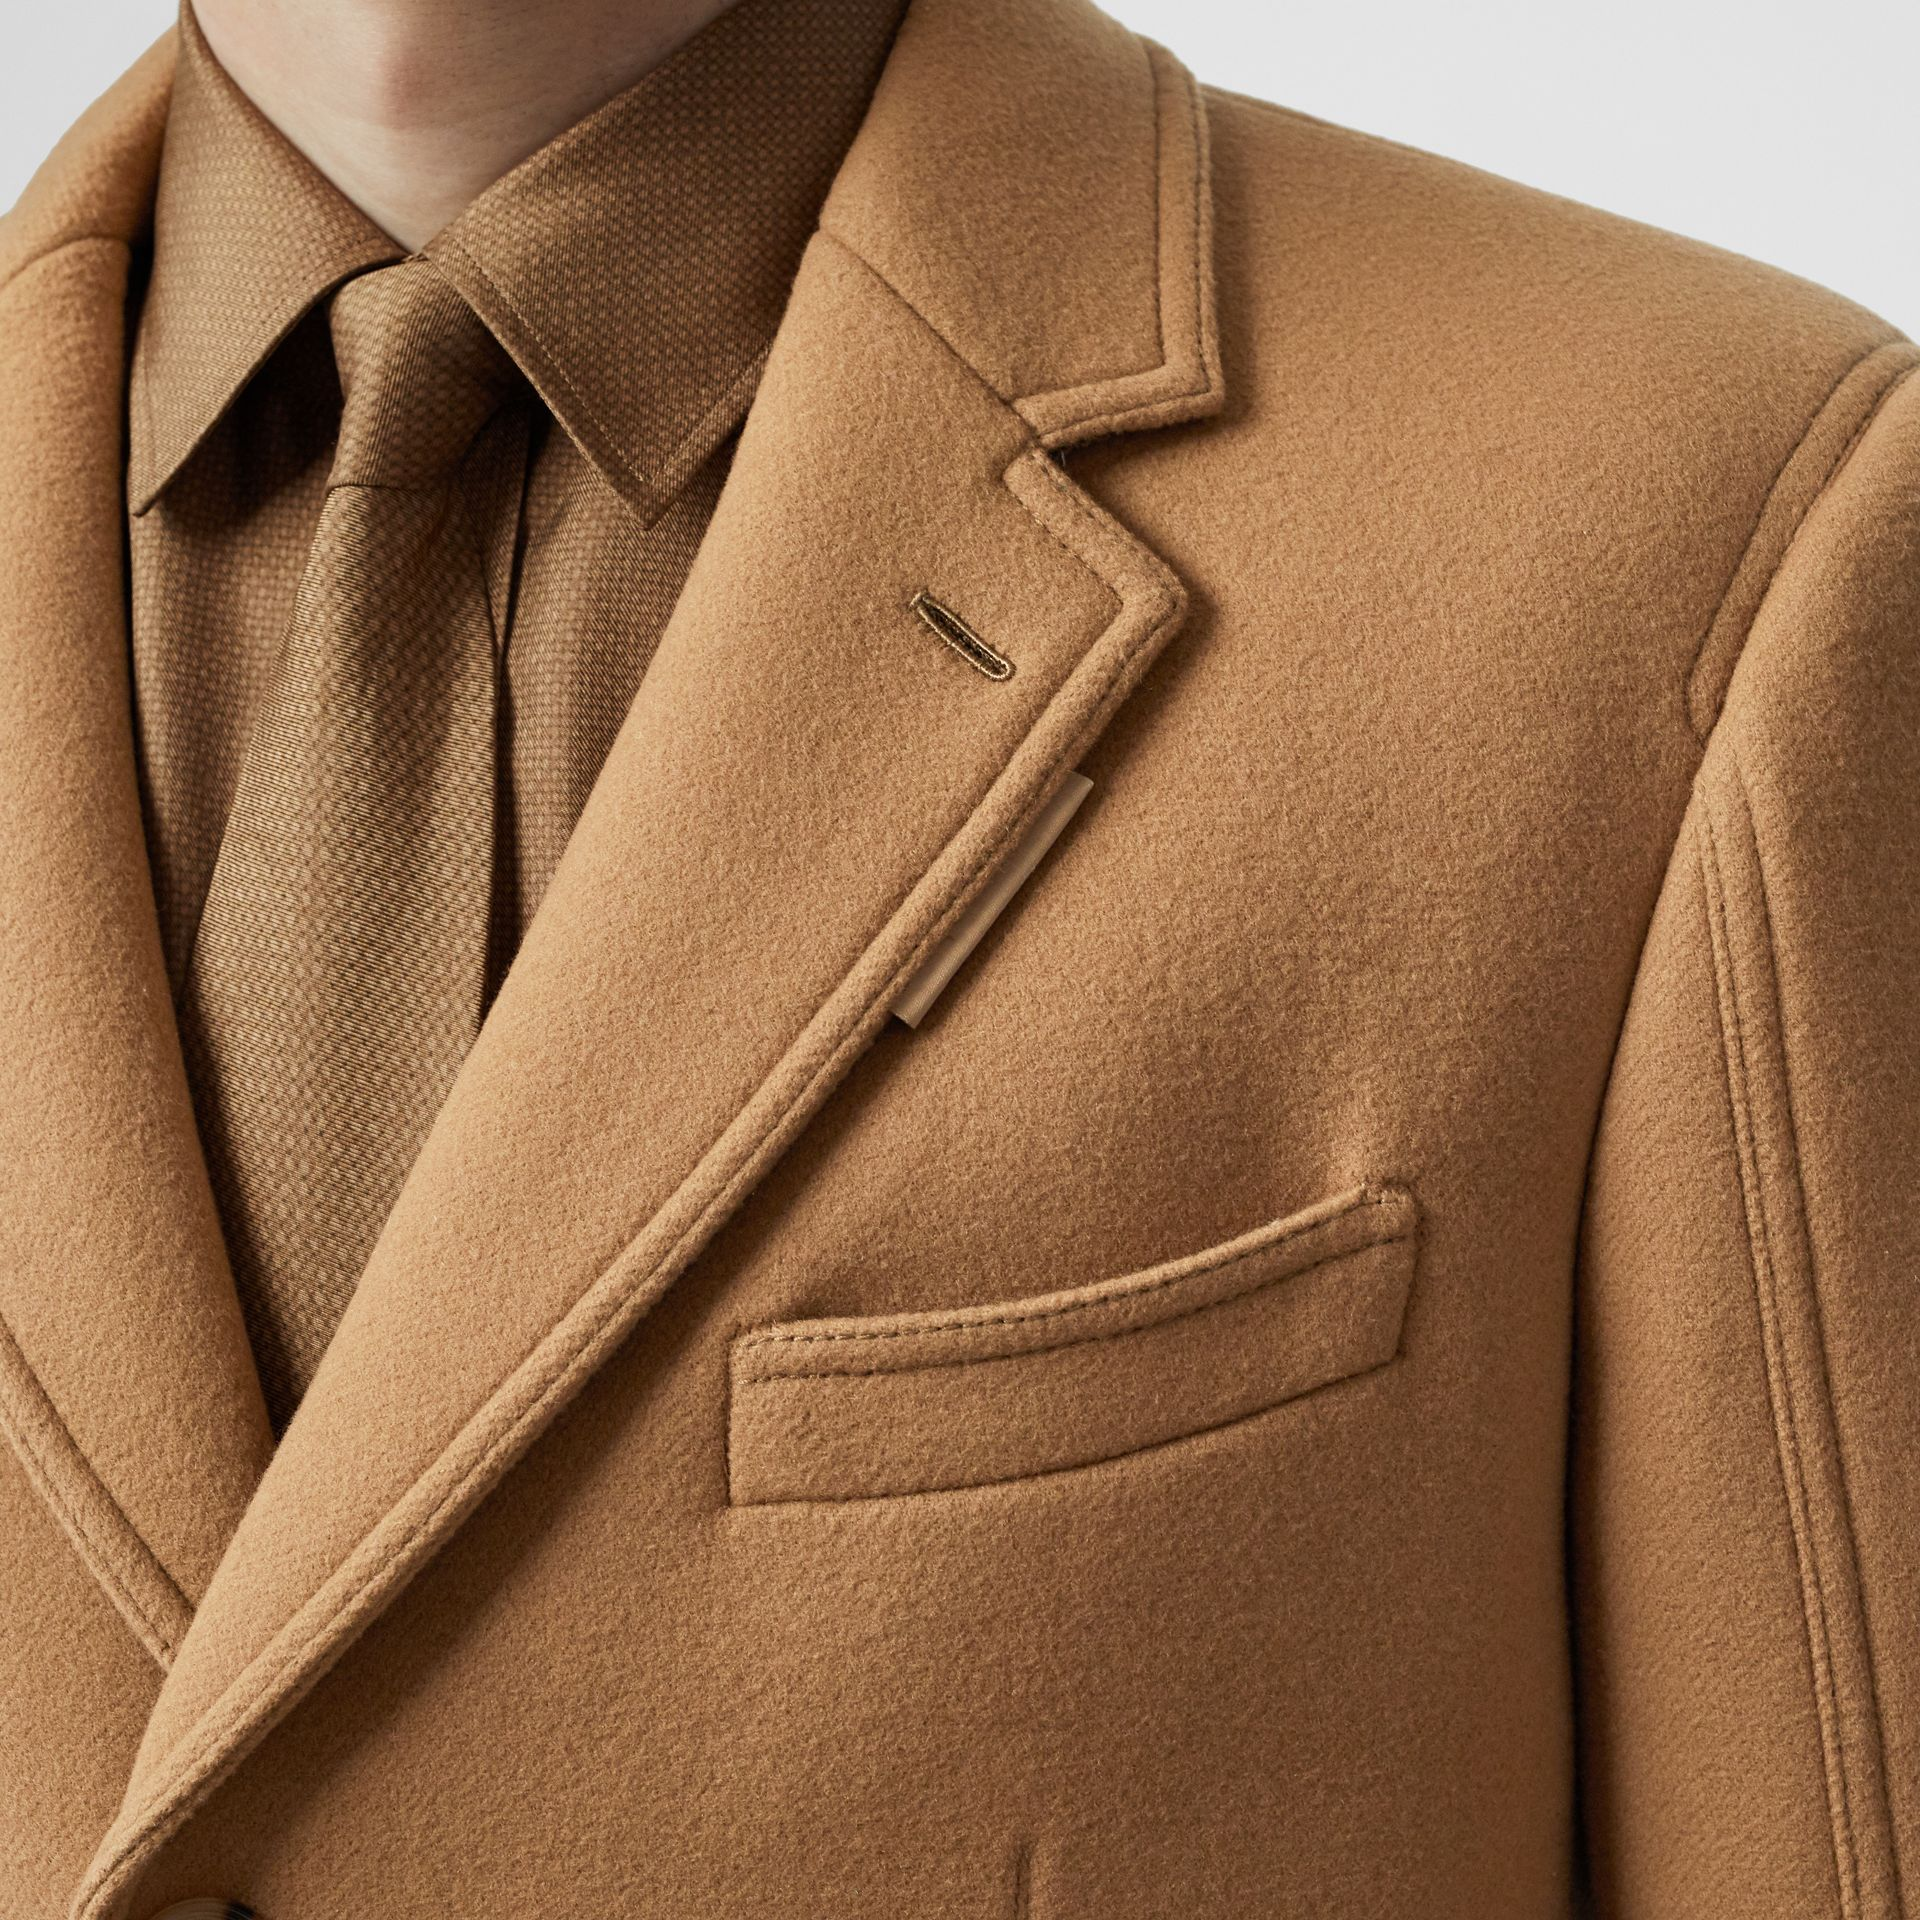 Zip Detail Wool Tailored Coat in Warm Camel - Men | Burberry - gallery image 3